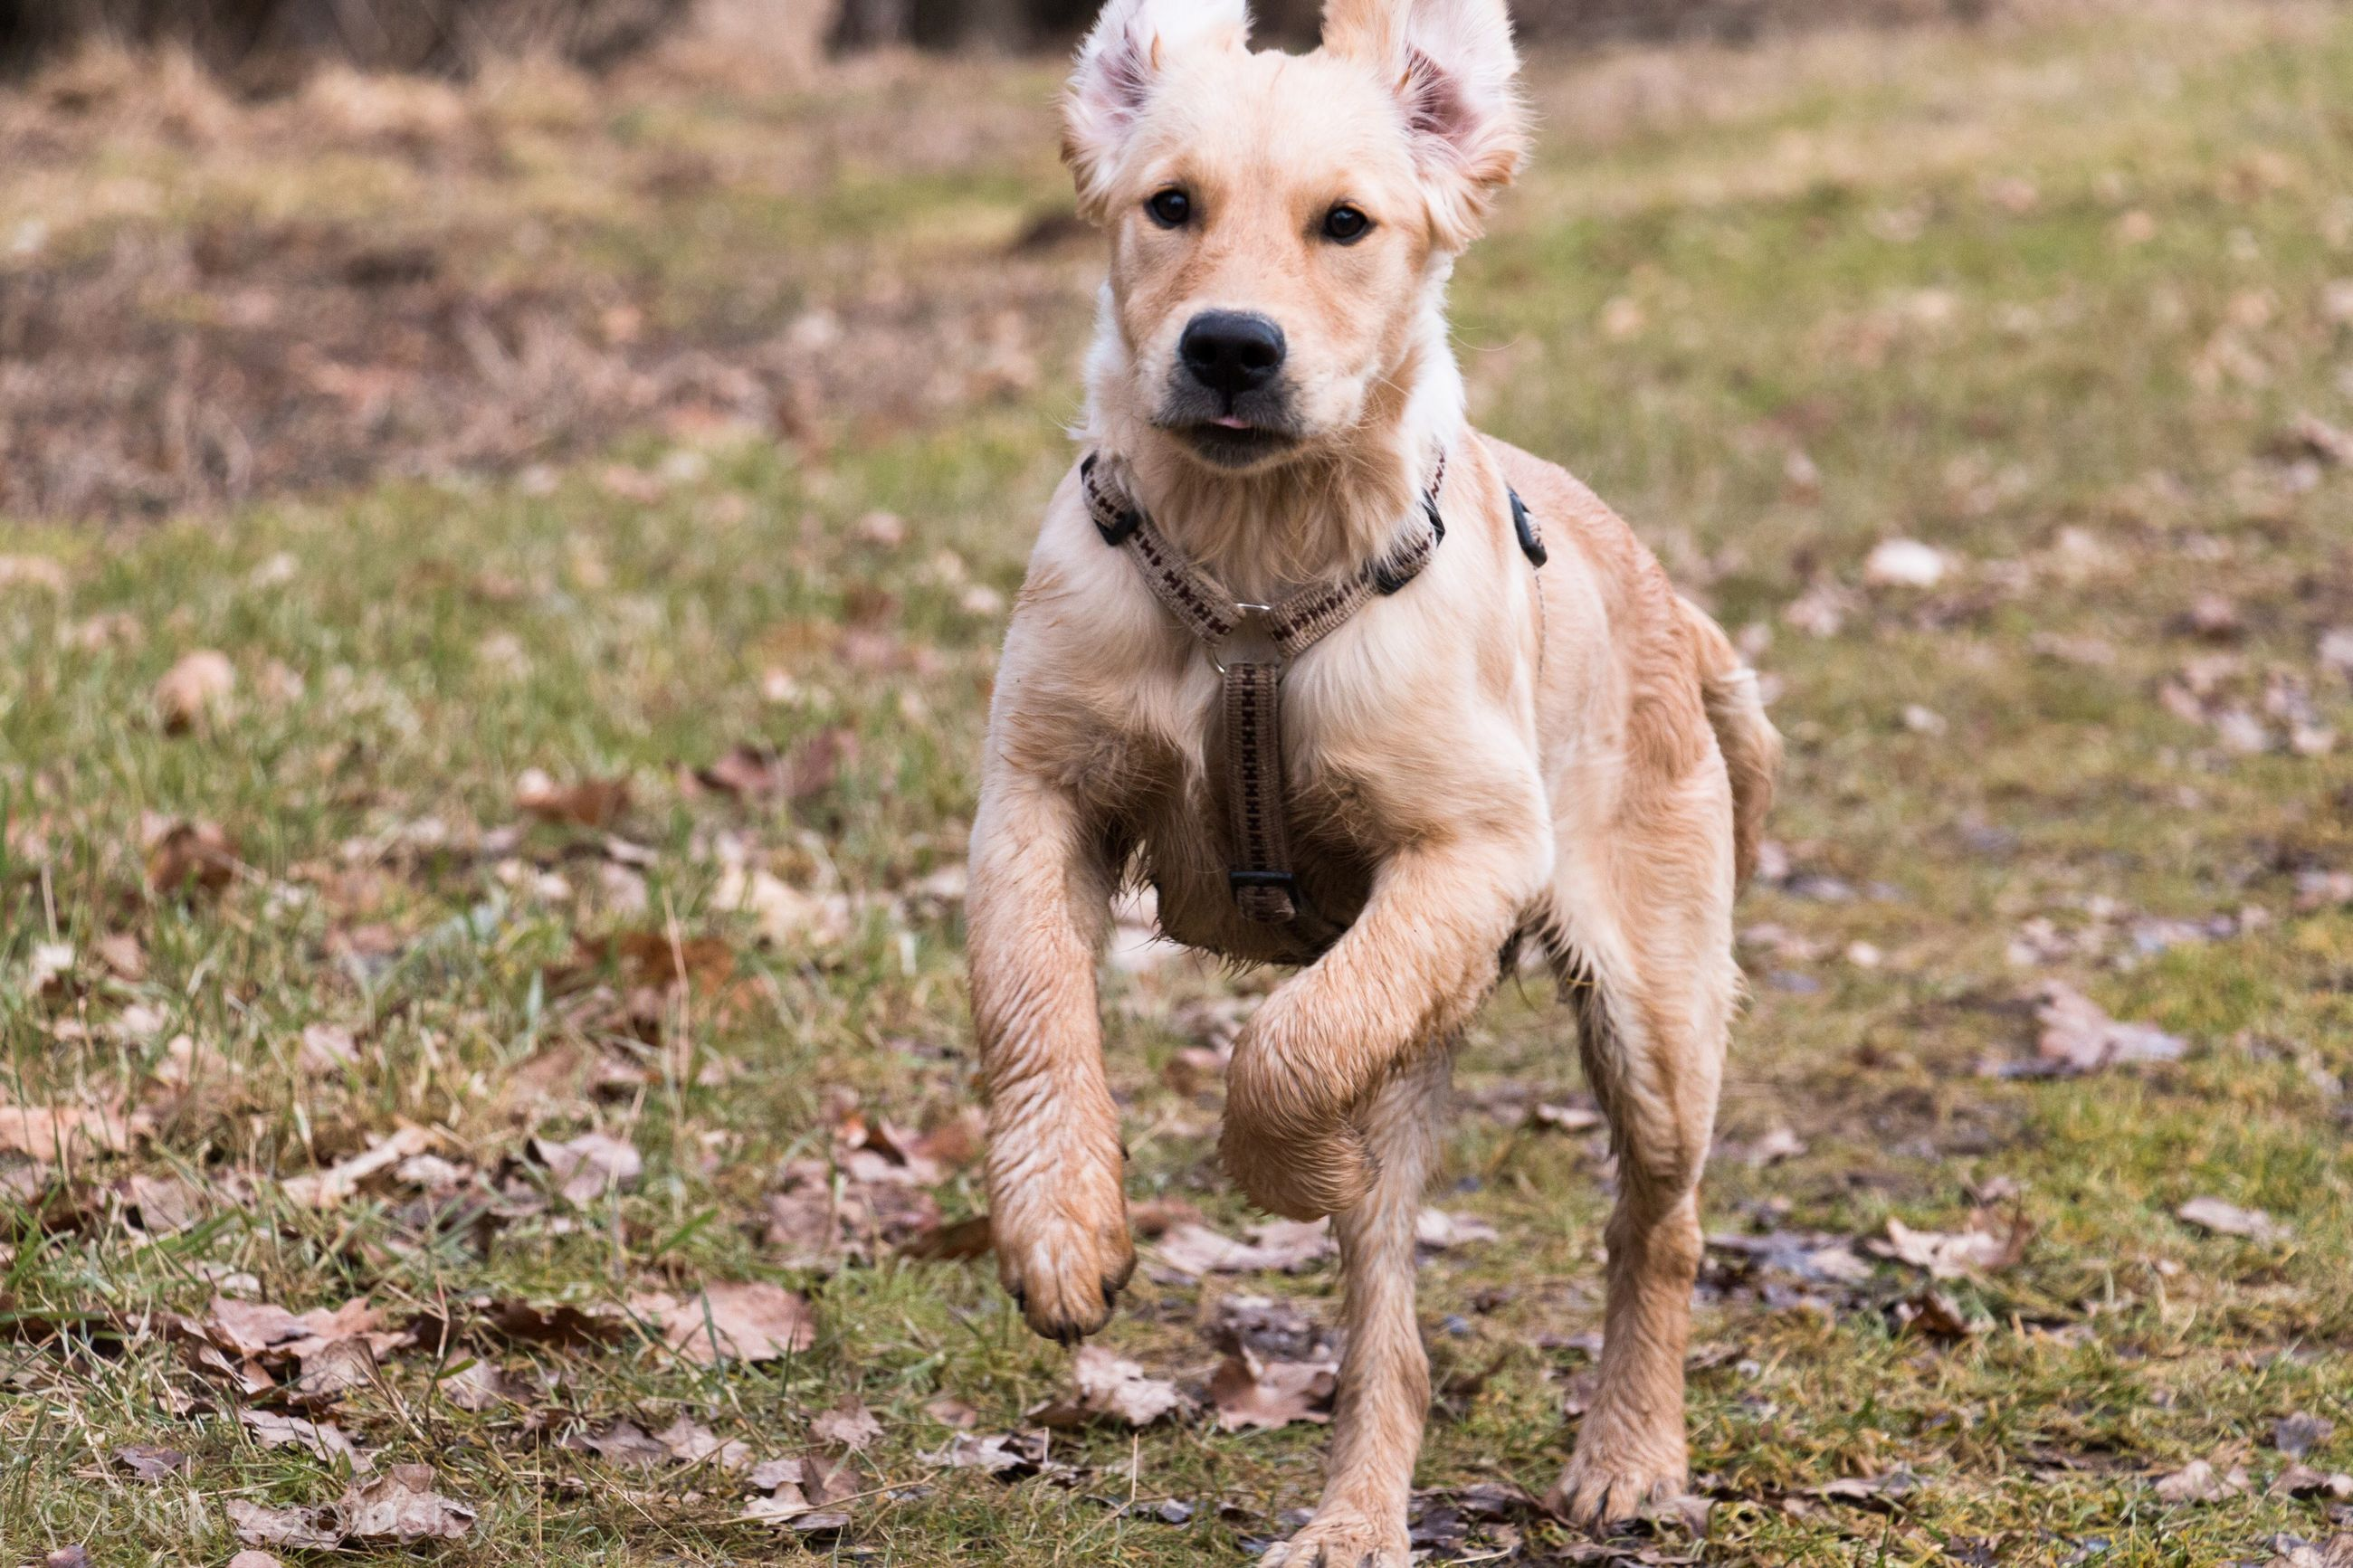 dog, one animal, pets, domestic animals, animal themes, looking at camera, mammal, portrait, running, field, outdoors, focus on foreground, day, grass, no people, nature, close-up